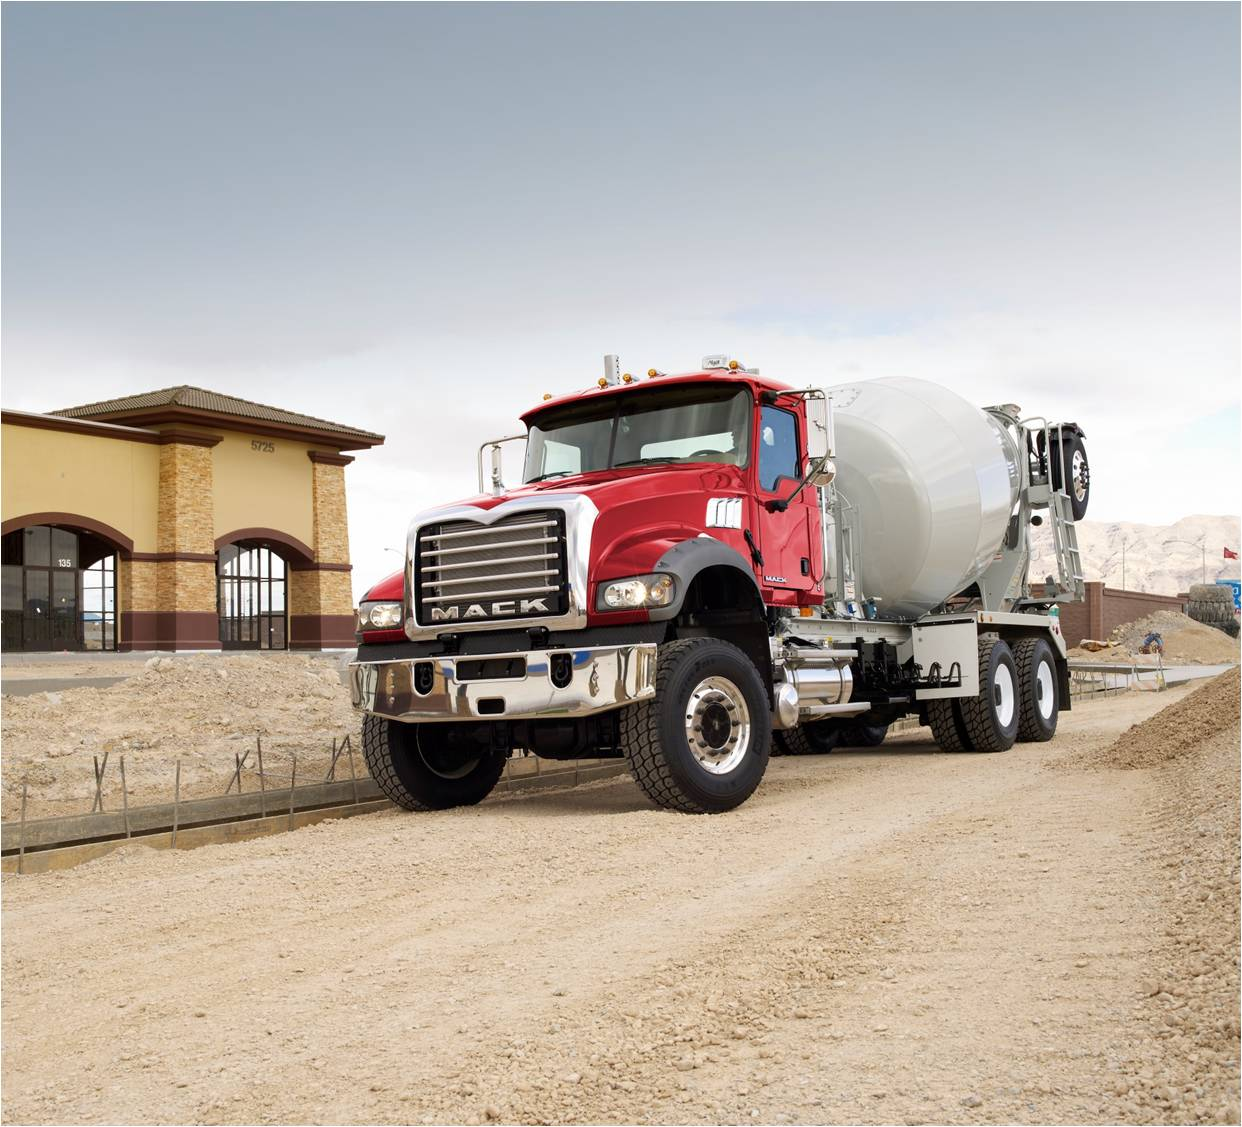 Mack Truck Cement Mixer : Concrete industry management cim program january